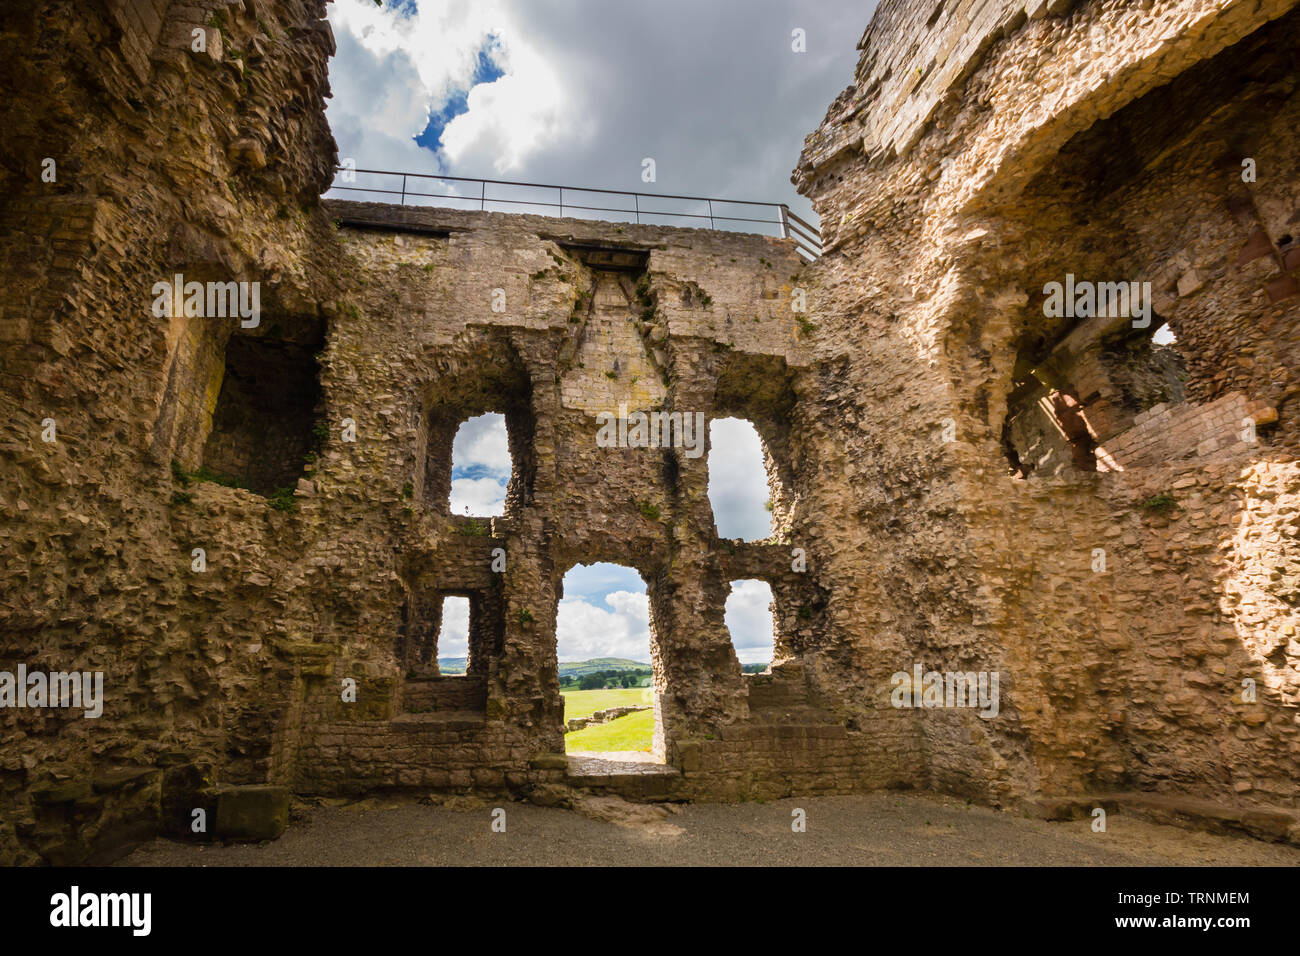 The ruined walls of Denbigh Castle built in the 13th century by Henry the first as part of his military fortifications to subdue the Welsh. It is now - Stock Image